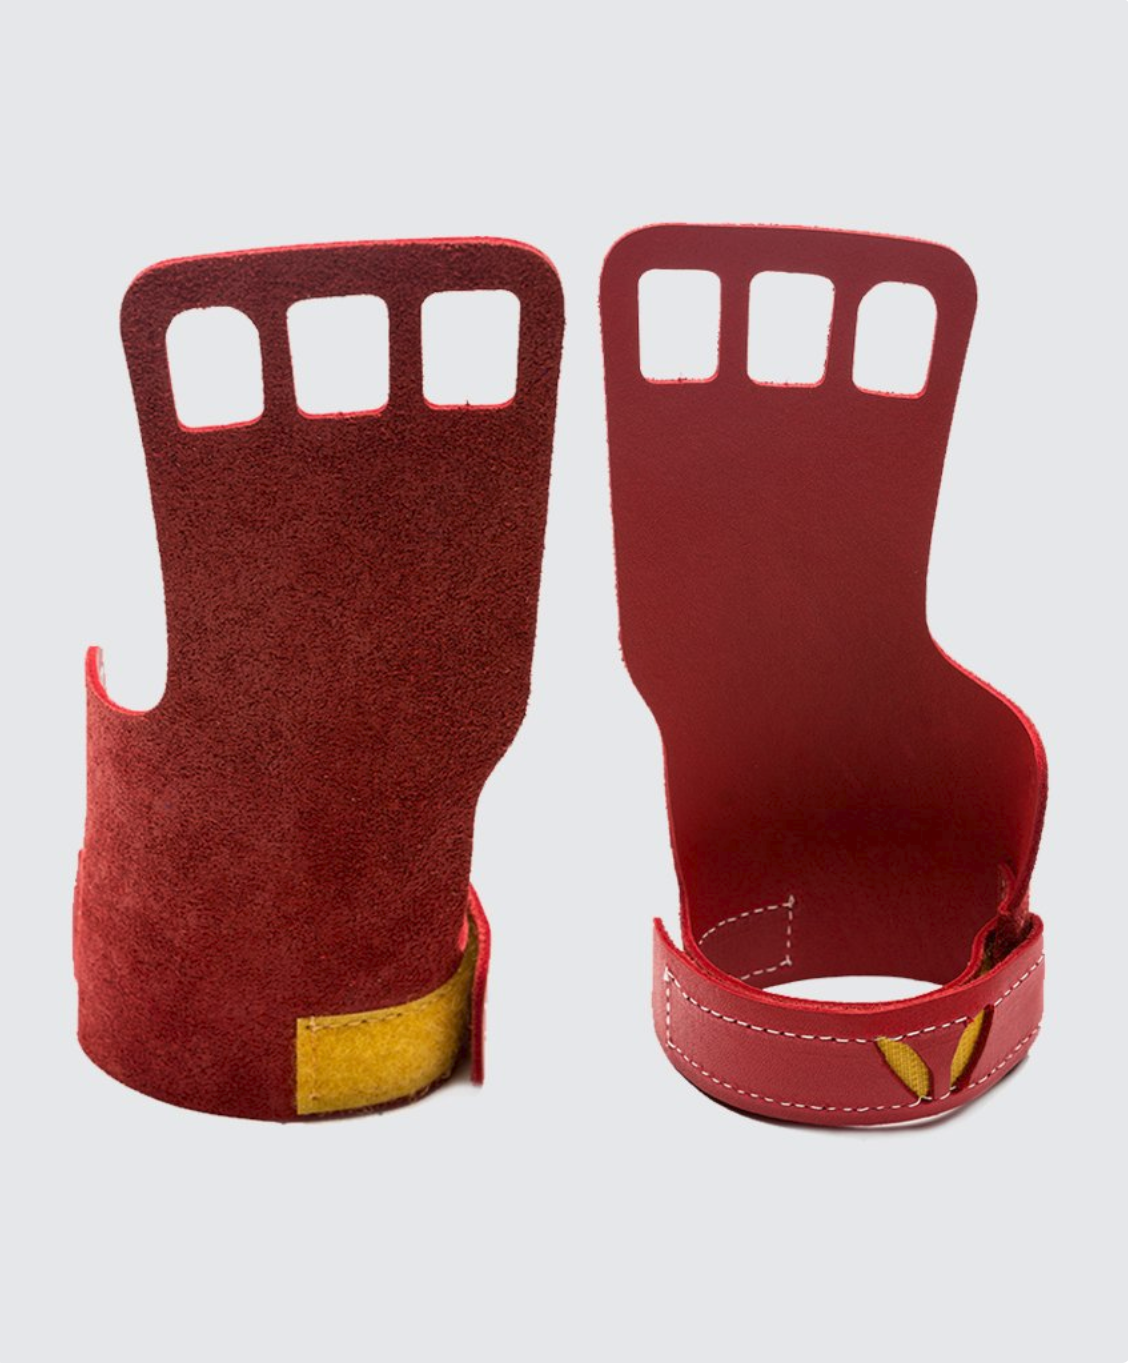 3 finger grips in leather color Red - Victory Grip used for Crossfit pullups, muscle ups and barbell work.